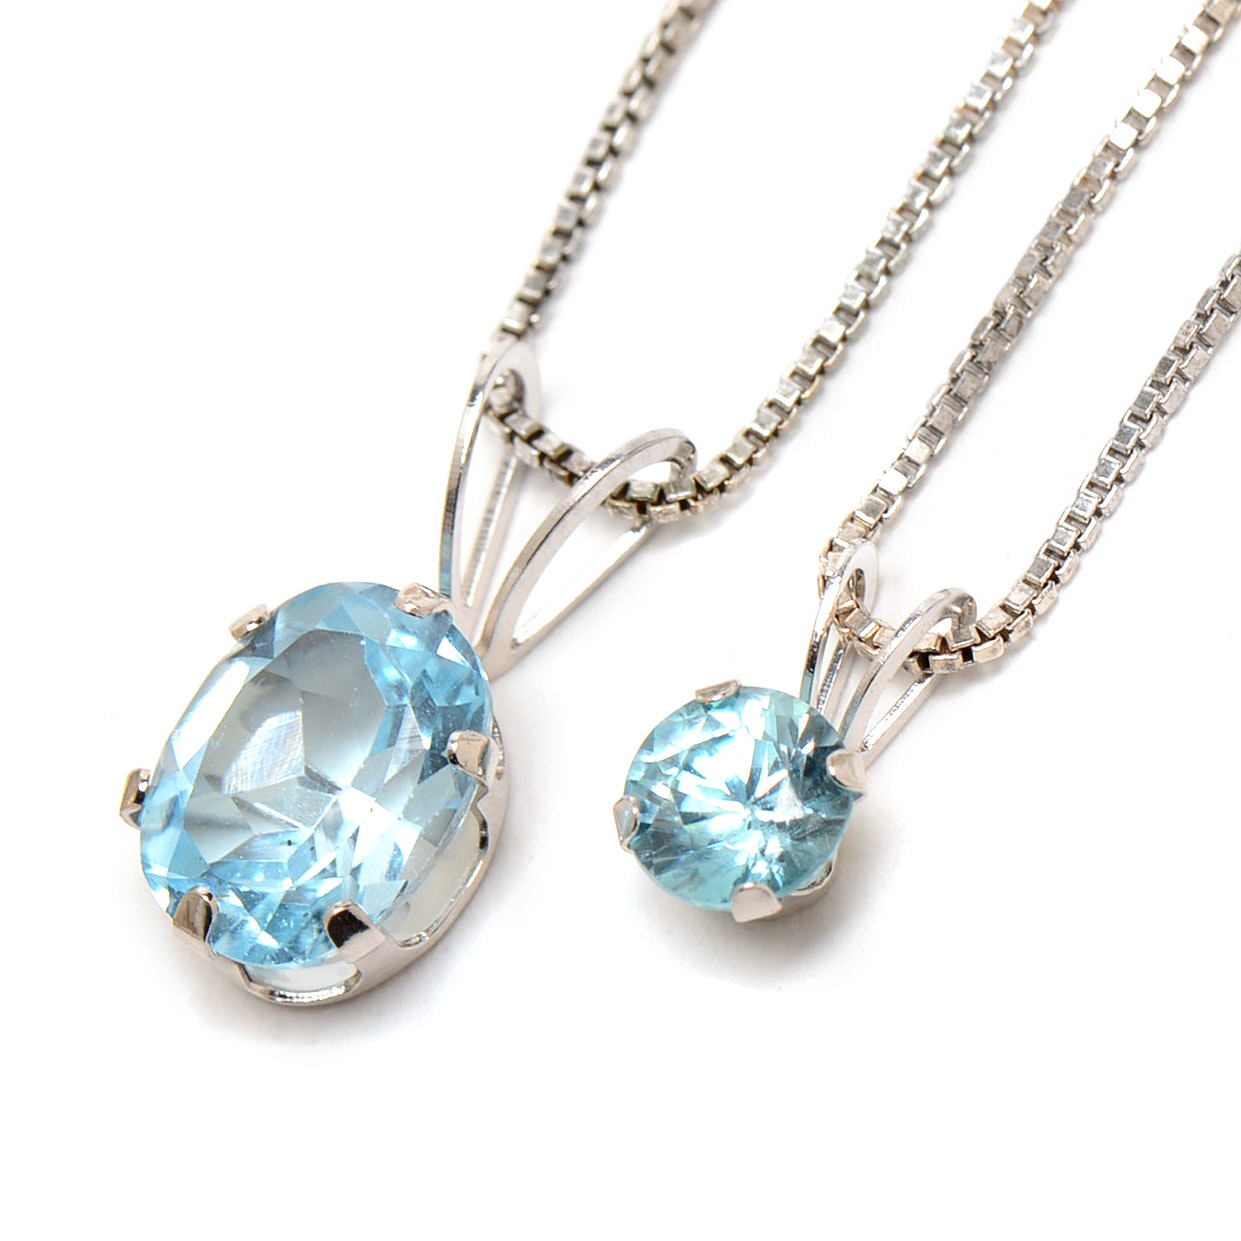 14K White Gold Sterling Silver Blue Topaz Necklaces